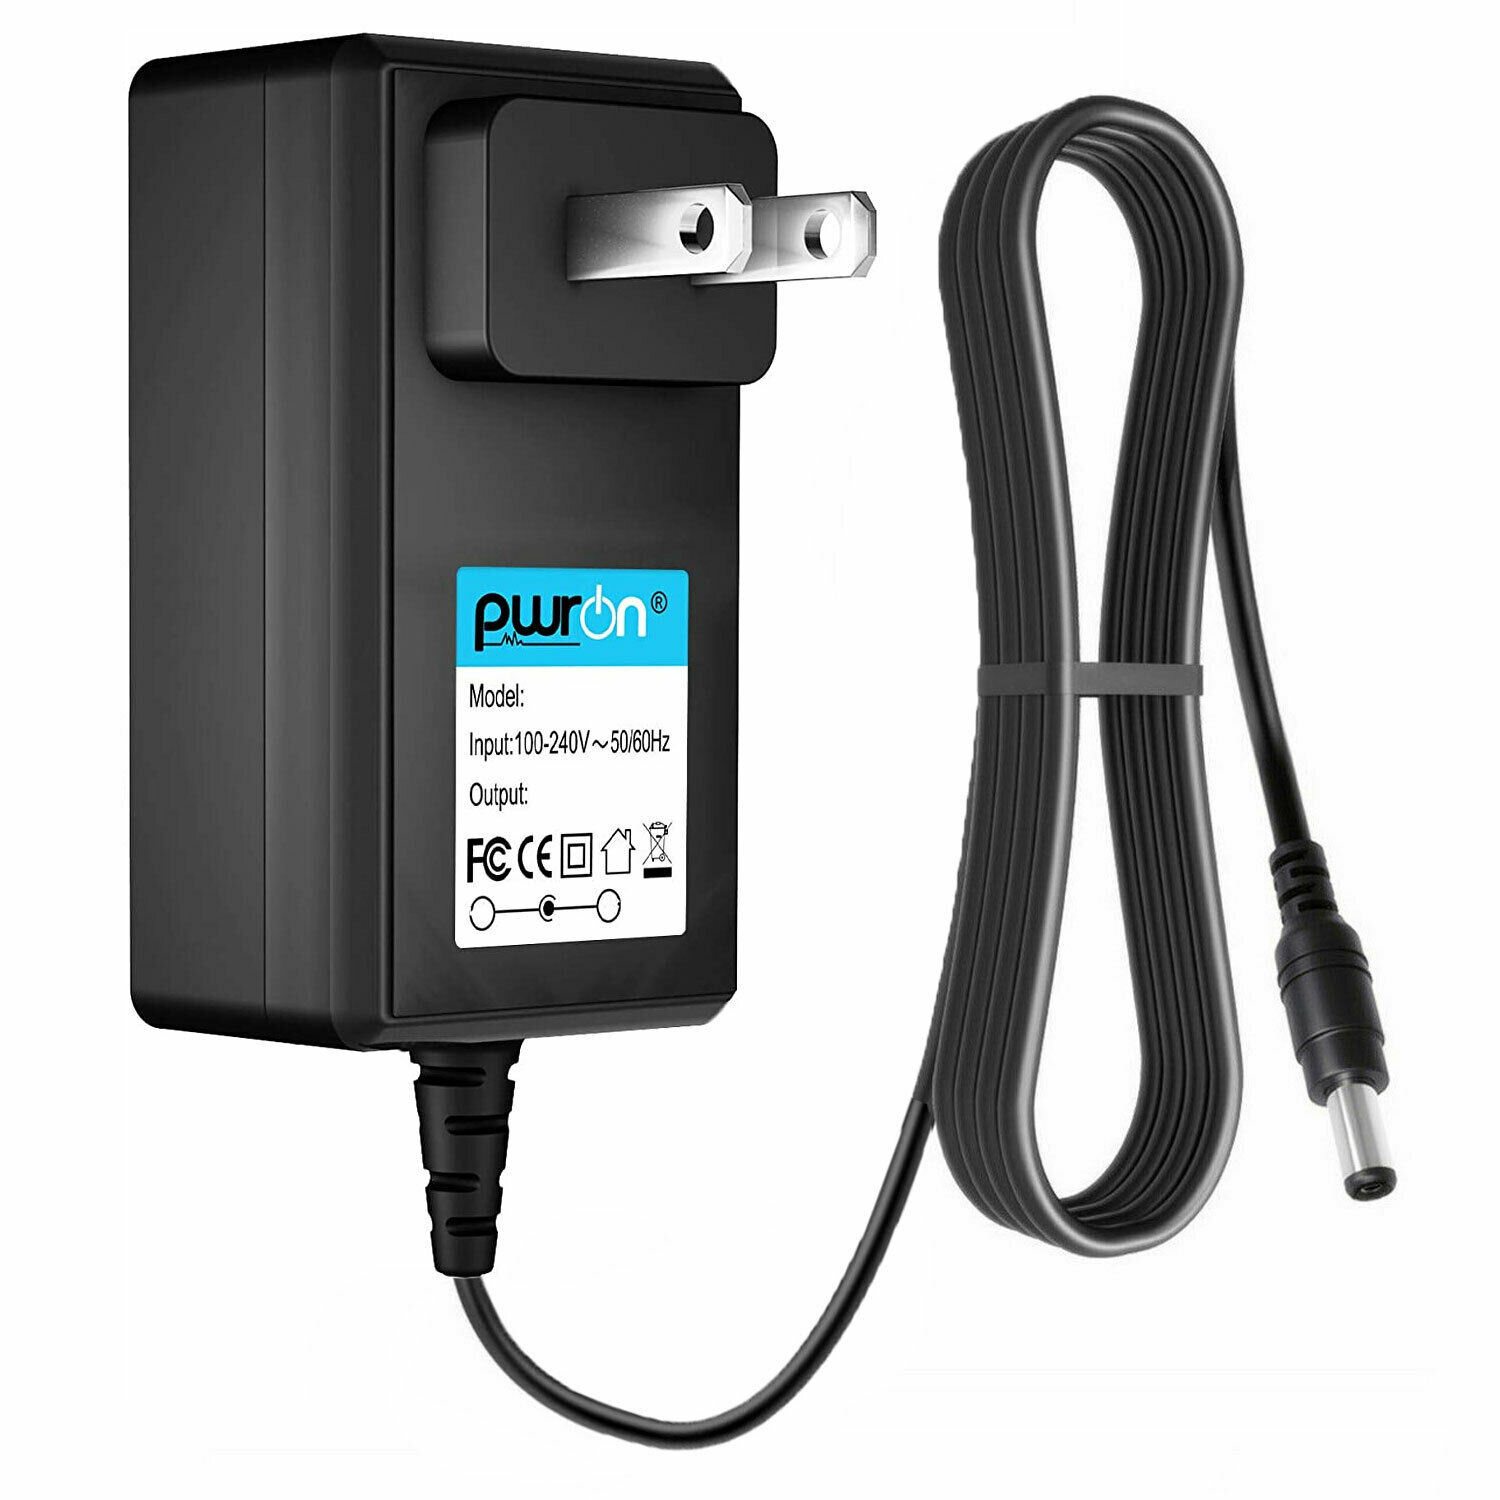 PwrON AC DC Adapter for NordicTrack 831.239461-E 6.3 831239461 831.239463-E 6.3